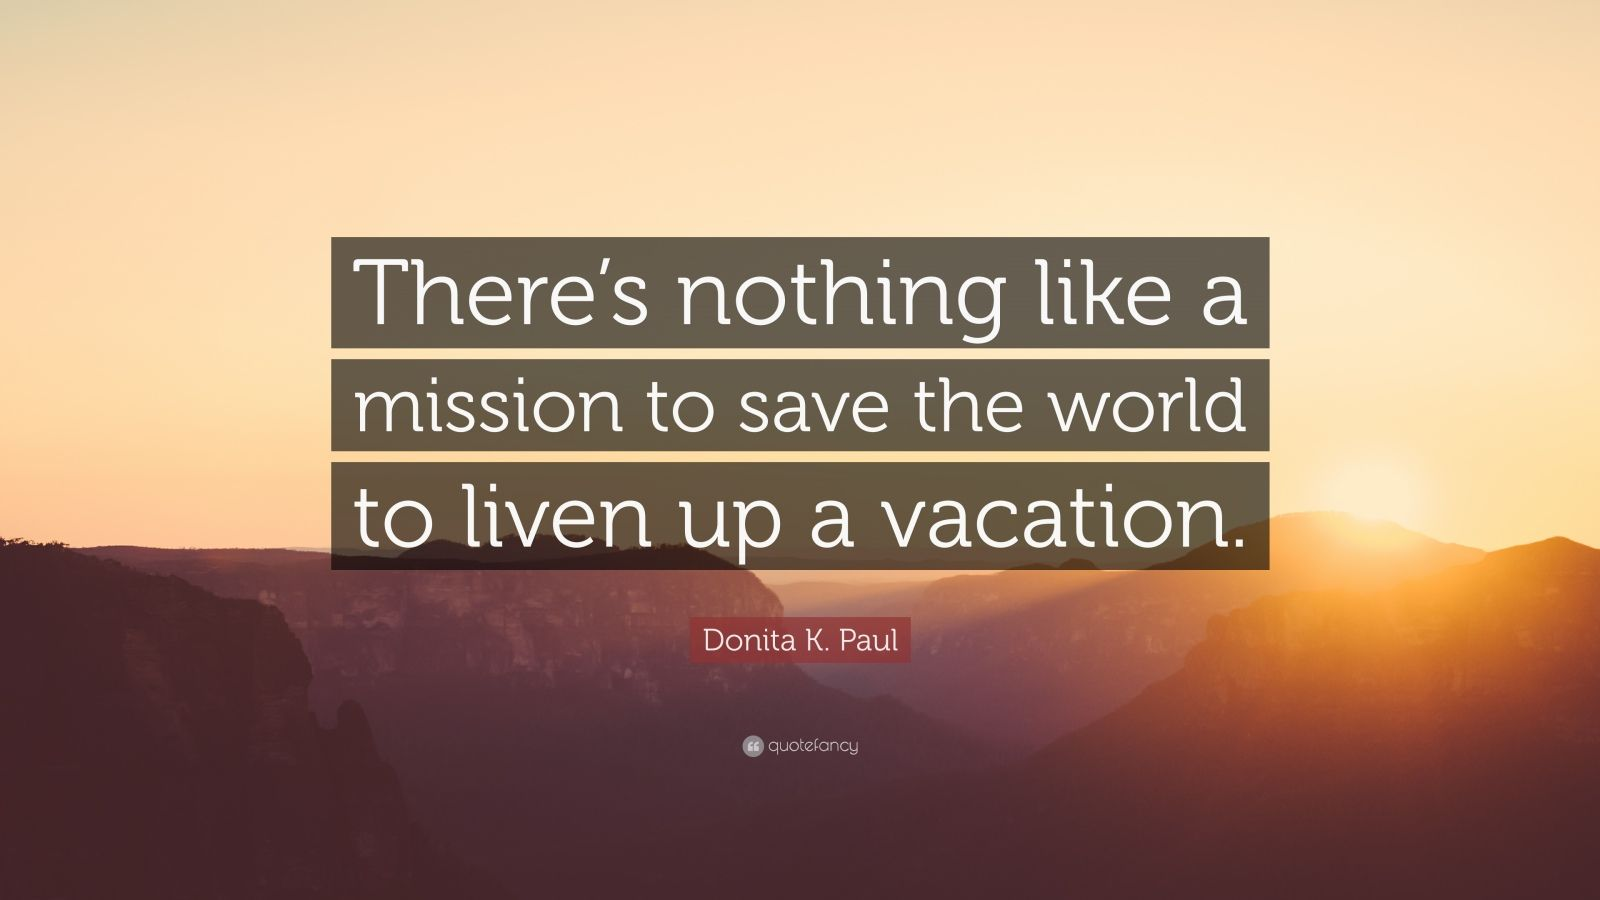 """Donita K. Paul Quote: """"There's nothing like a mission to save the world to liven up a vacation."""""""